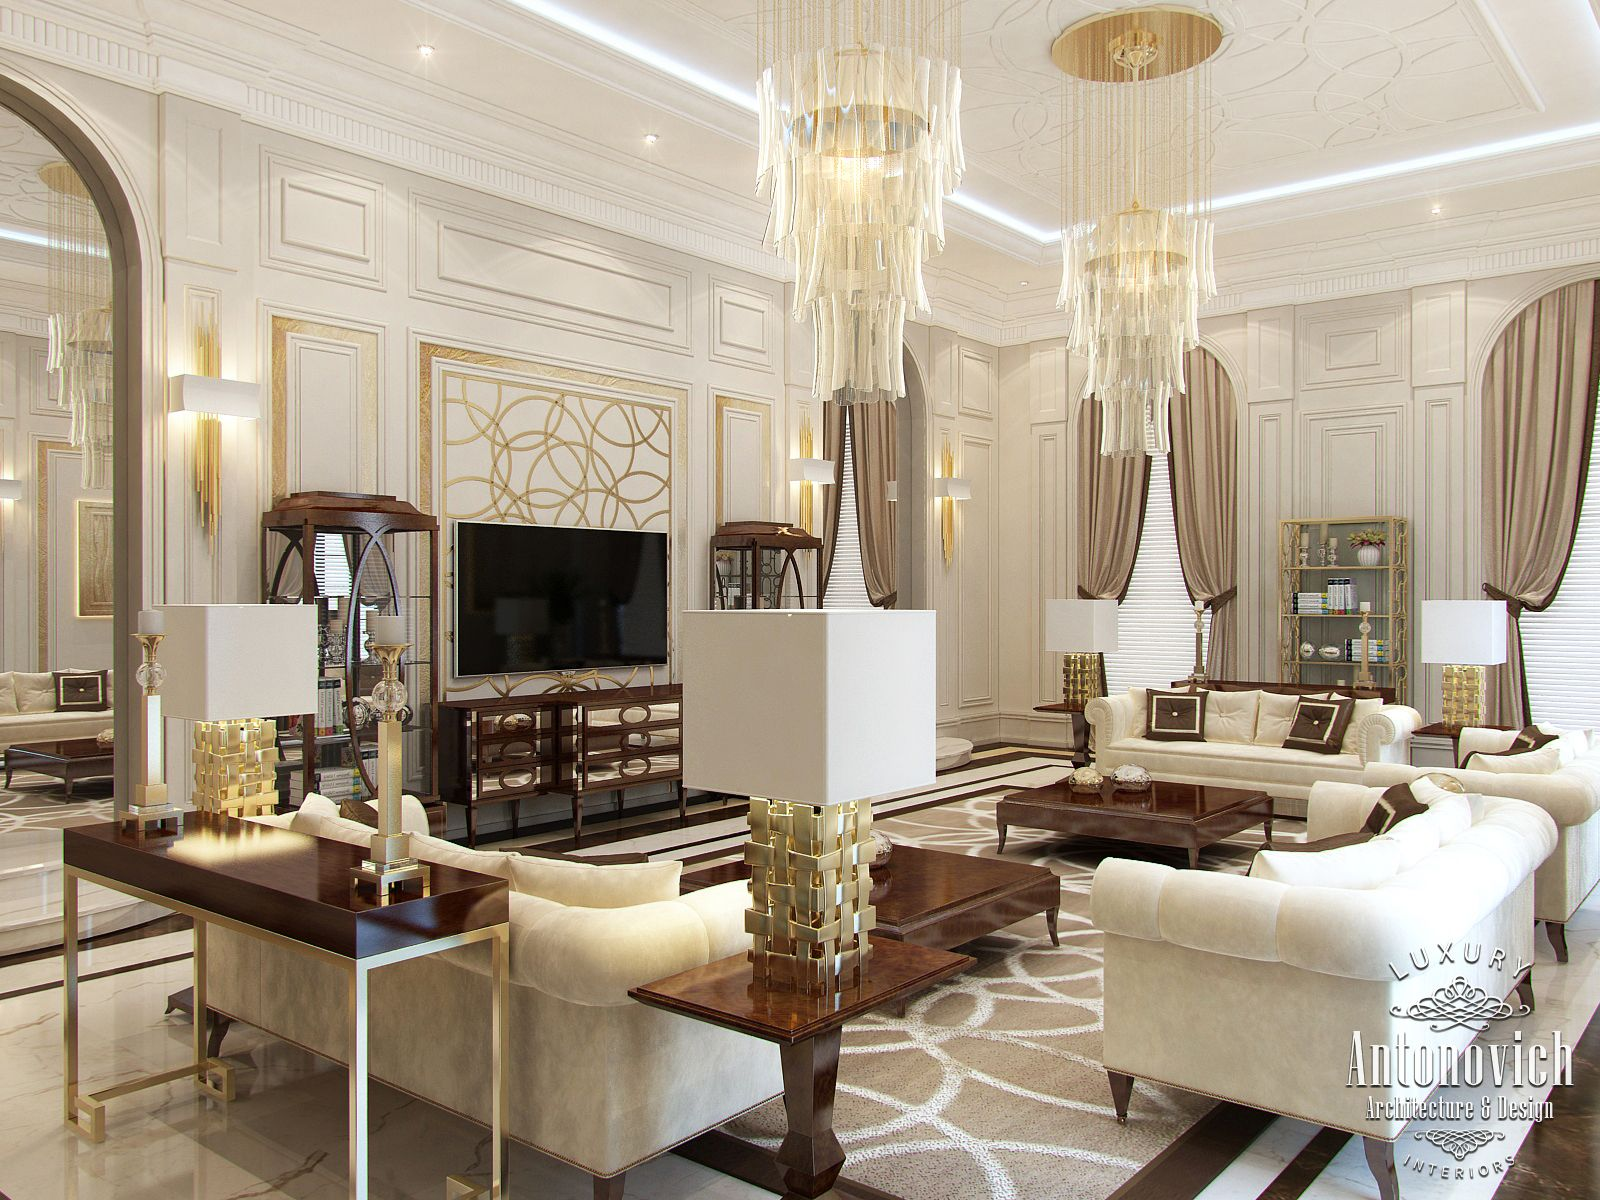 Luxury antonovich design uae interior design dubai from for One agency interior design dubai